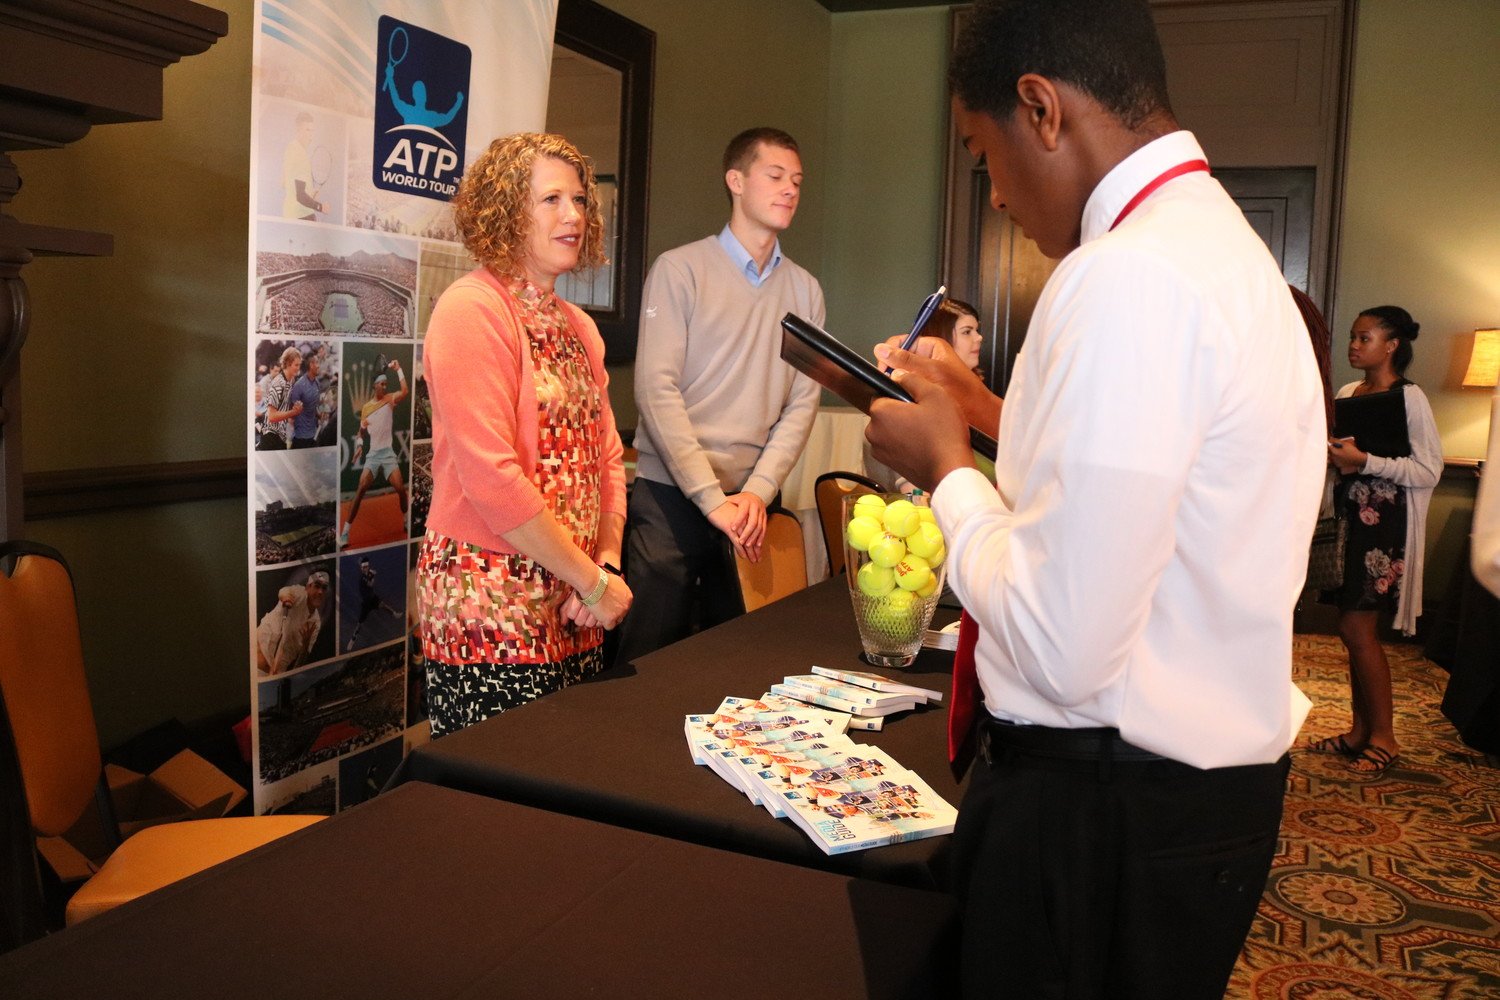 A student signs up to receive more information about ATP World Tour opportunities.